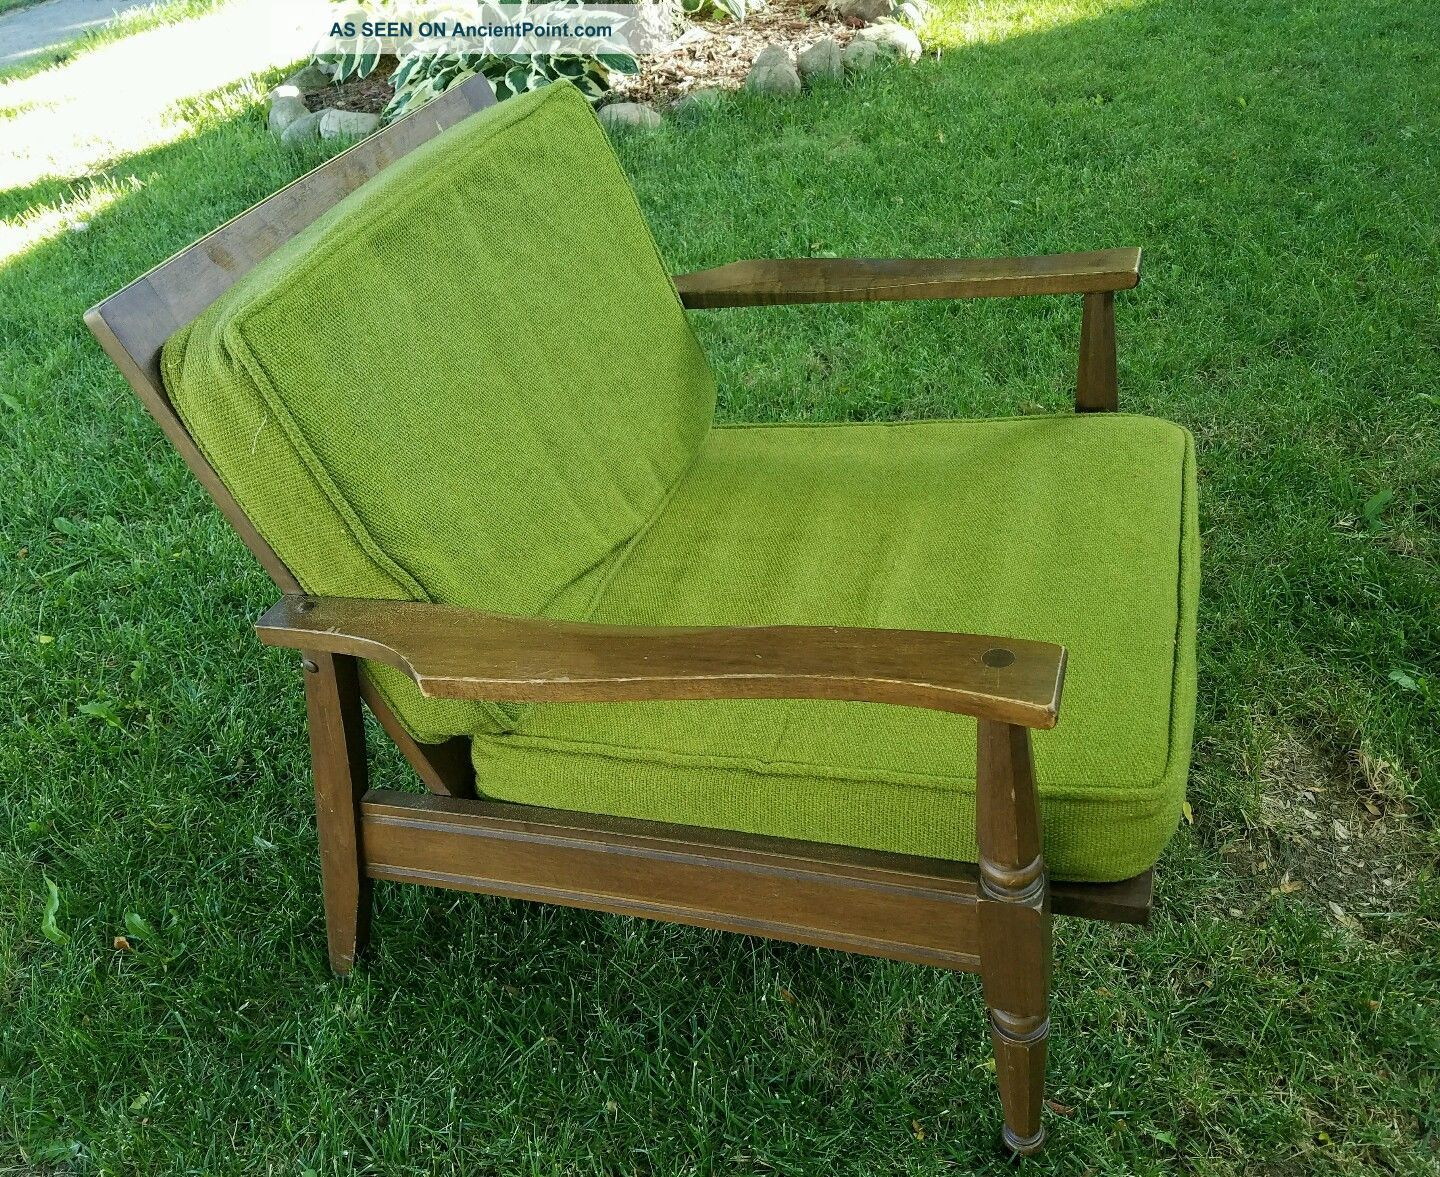 Vintage Heywood Wakefield Chair With Avocado Green Cushions